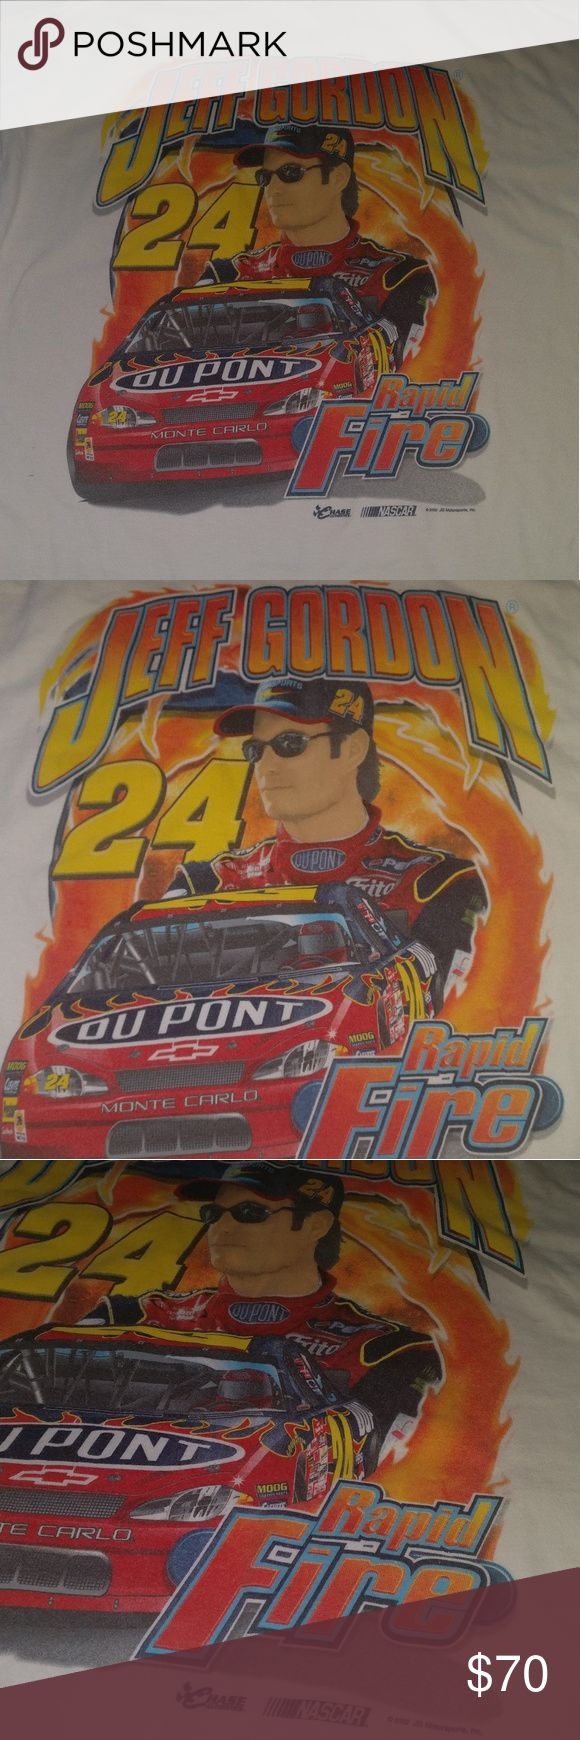 Chase Authentics Mens Jeff Gordan Nascar T Shirt Chase Authentics Mens Jeff Gordan Nascar T Shirt  Size XL  Gently Pre-owned - No Holes, Rips, Or Stains  Pocket on front of Shirt and Big Jeff Gordan Graphic on the back.   White Nascar T Shirt. Chase Authentics Shirts Tees - Short Sleeve